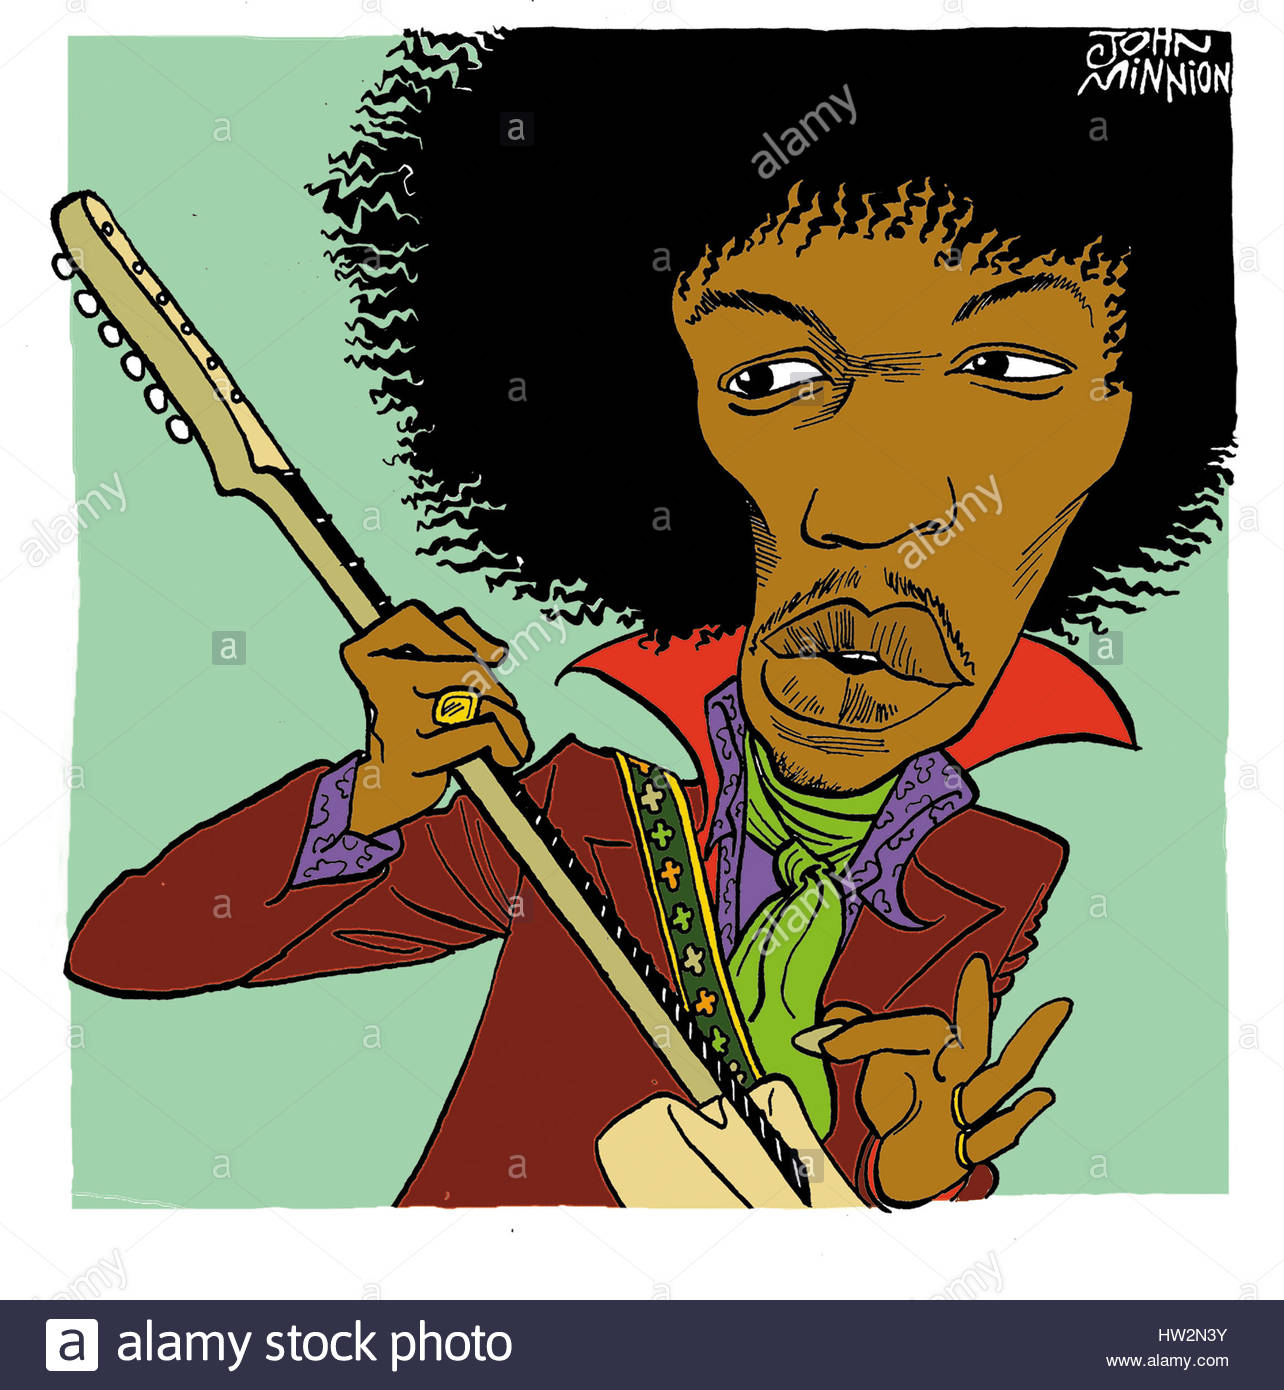 a biography of jimi hendrx an american musician guitarist singer and songwriter Little wing by jimi hendrix song srv was probably the only guitarist worthy of holding jimi's jockstrap he was a great songwriter, singer, and poet.